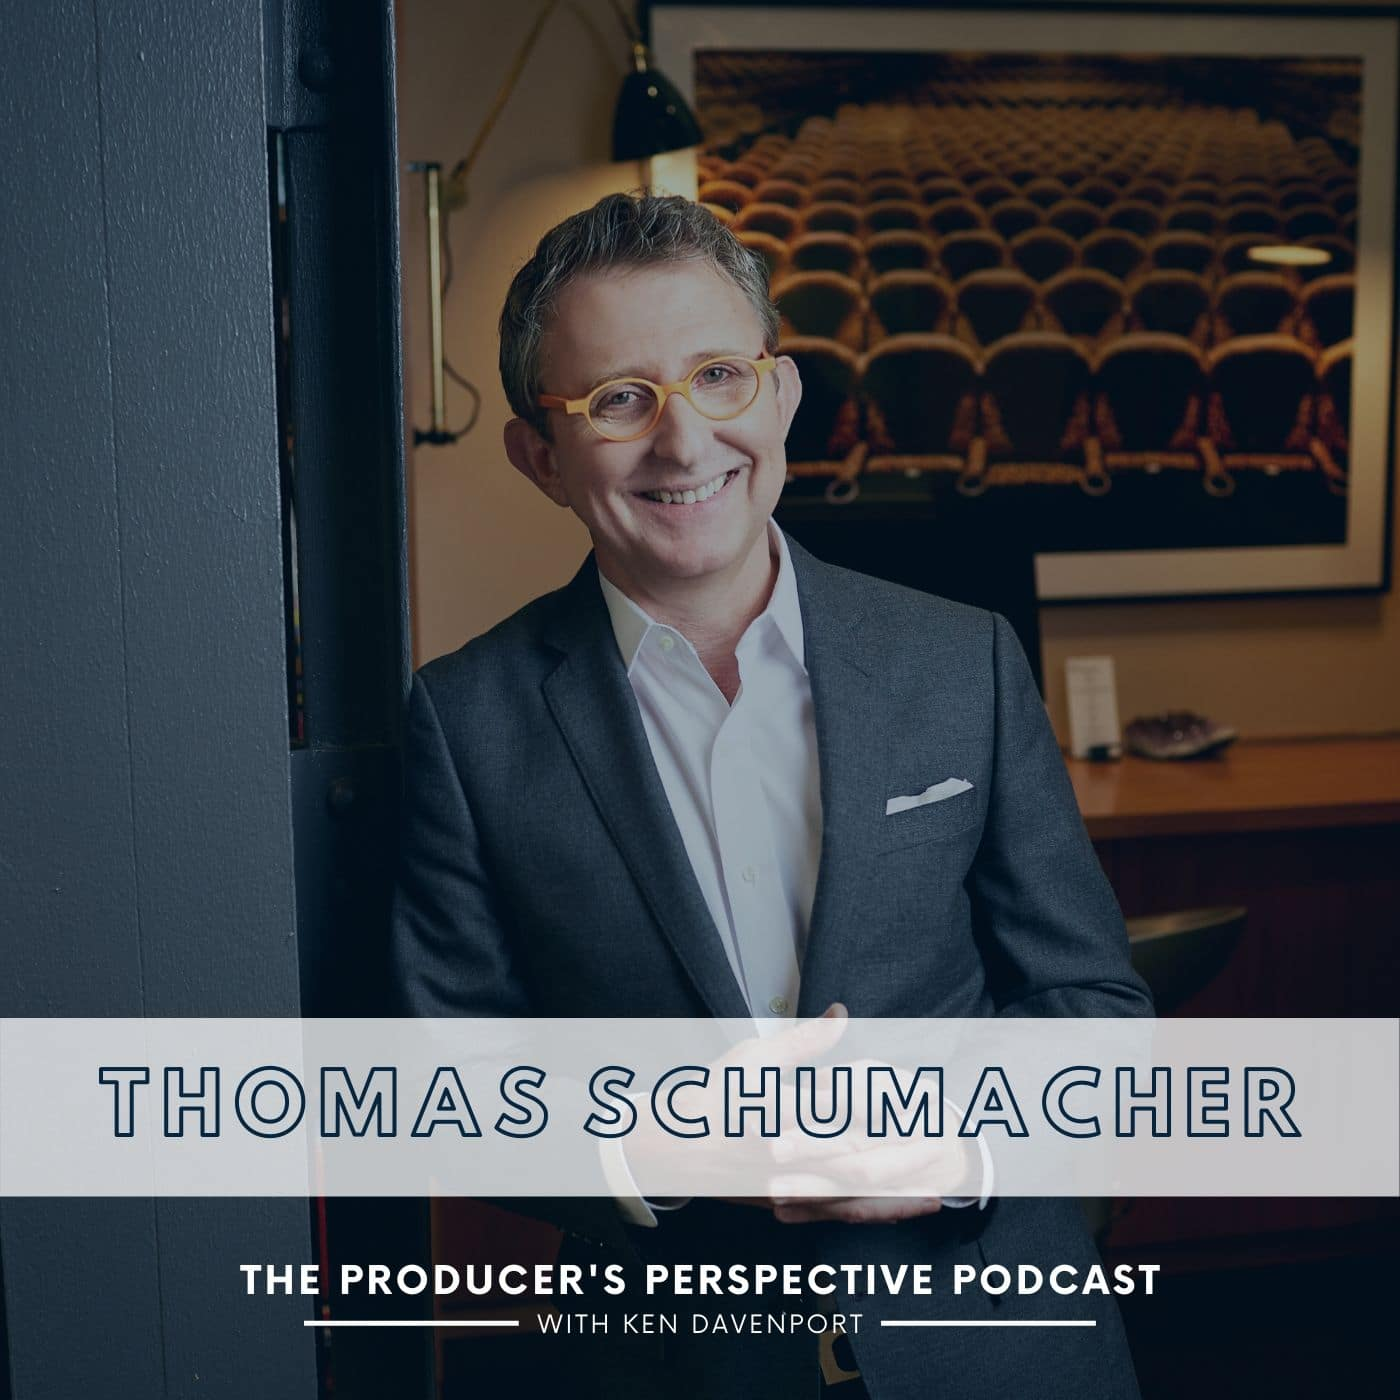 The Producer's Perspective Episode 206 Thomas Schumacher